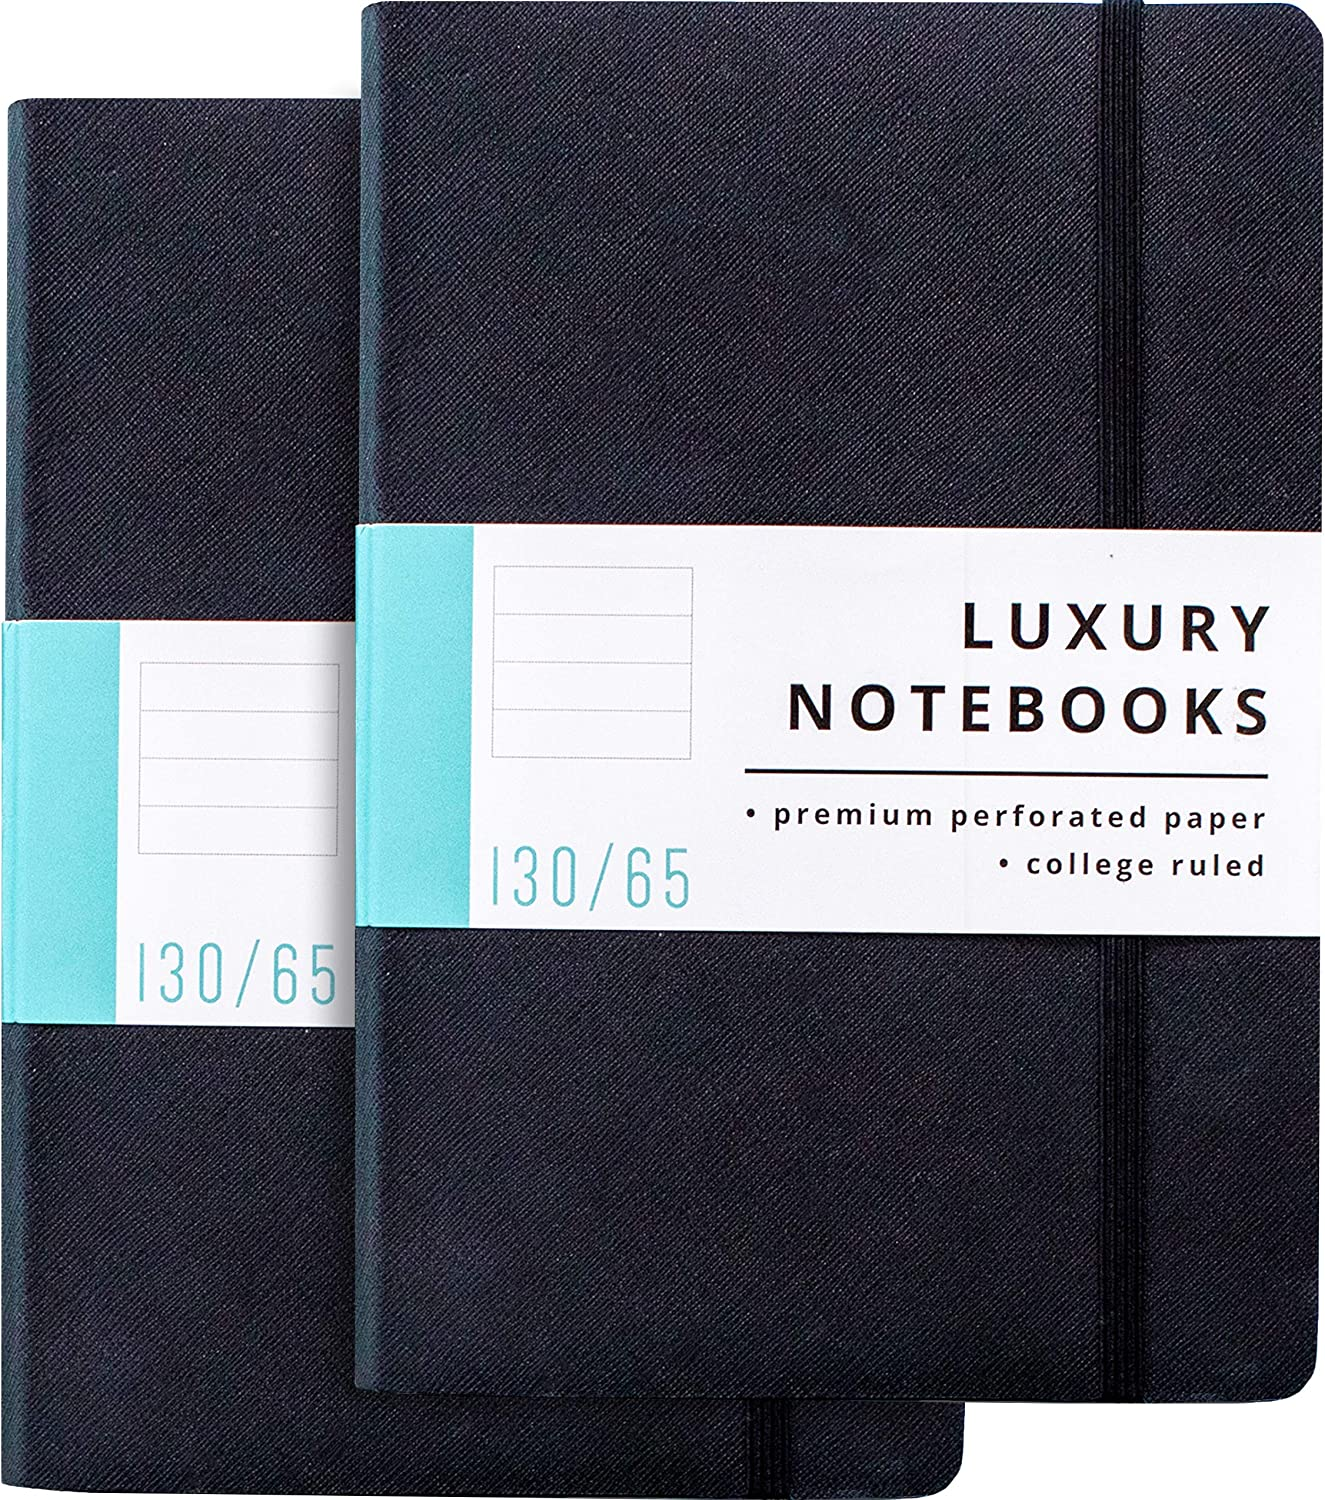 2 Pack Luxury Notebook Lined Journal - 130 Perforated Pages - Thick Paper (120 gsm) - Lay Flat Design - 2 Bookmarks - Elastic Closure - Back Pocket, Set of 2, Softcover, Black (College Ruled)